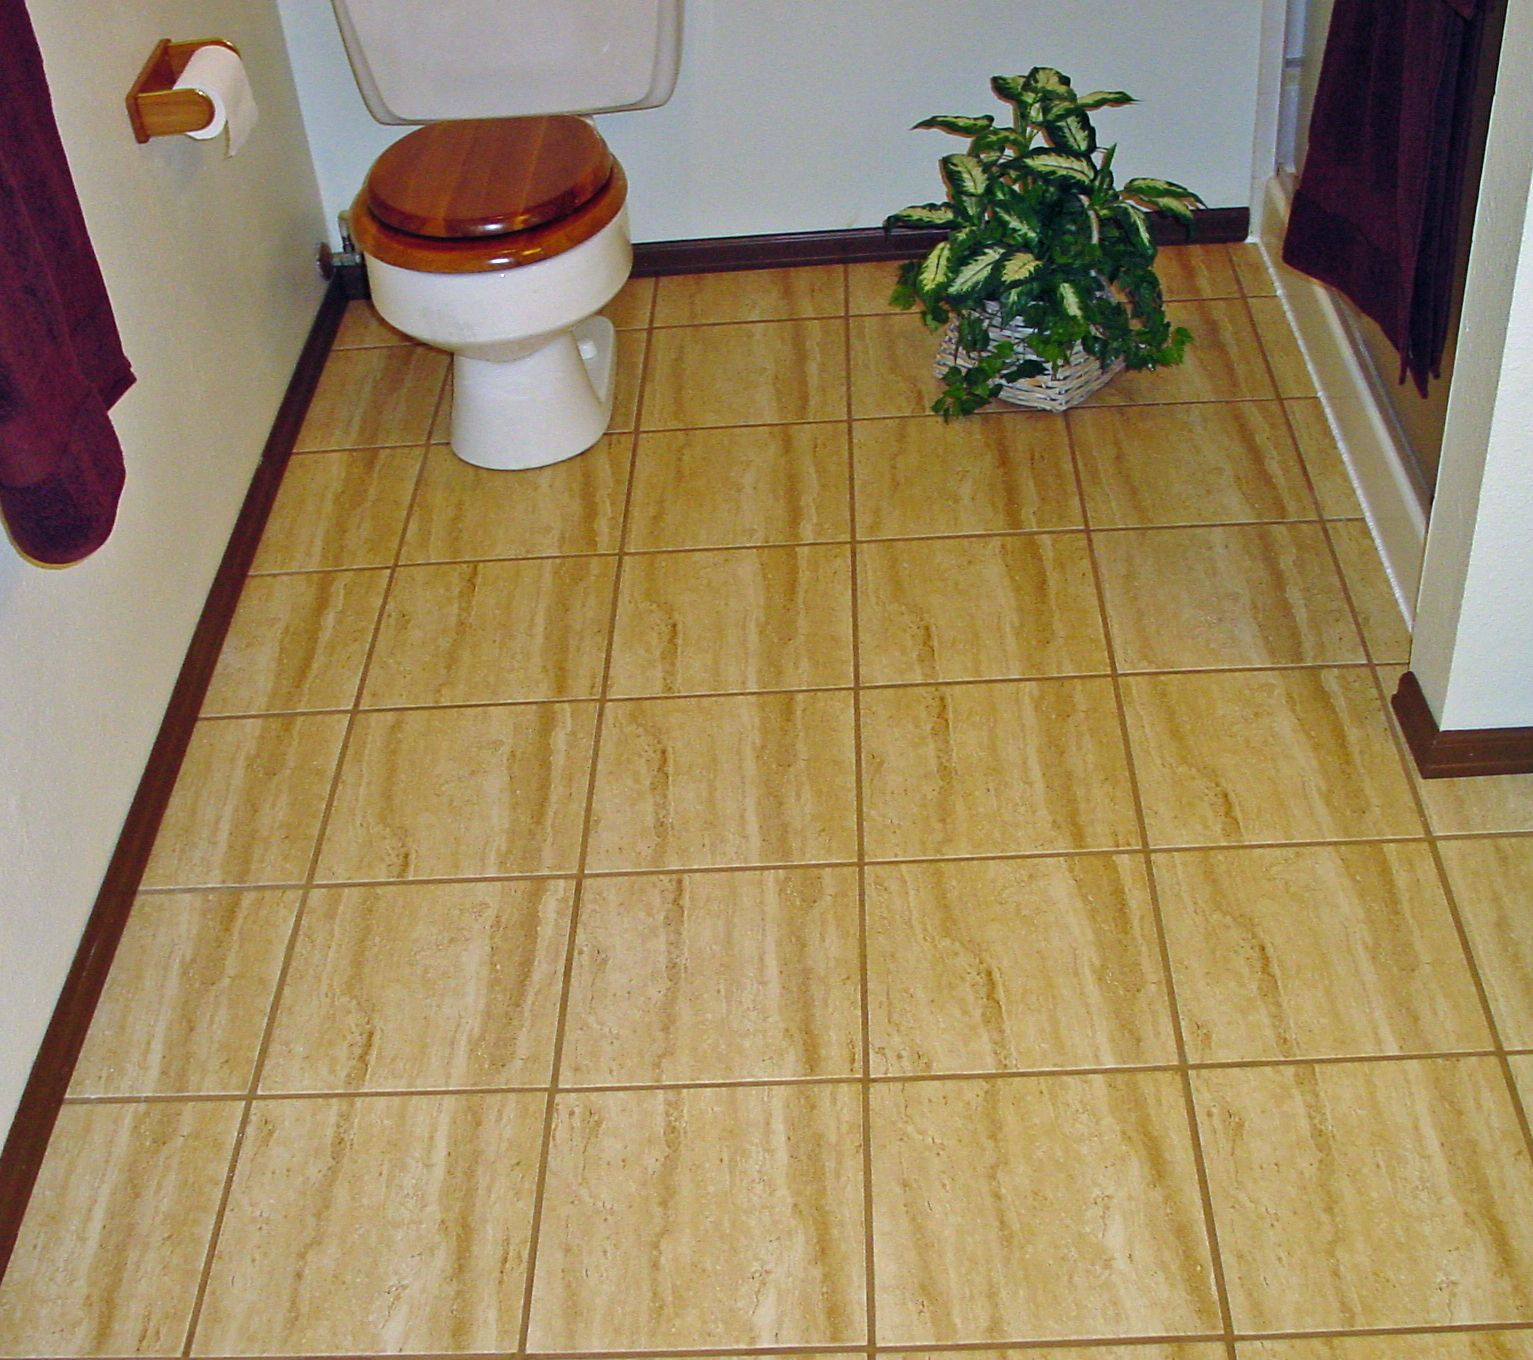 How To Lay Vinyl Floor Tiles In Bathroom: How To Lay A Floating Porcelain Or Ceramic Tile Floor Over